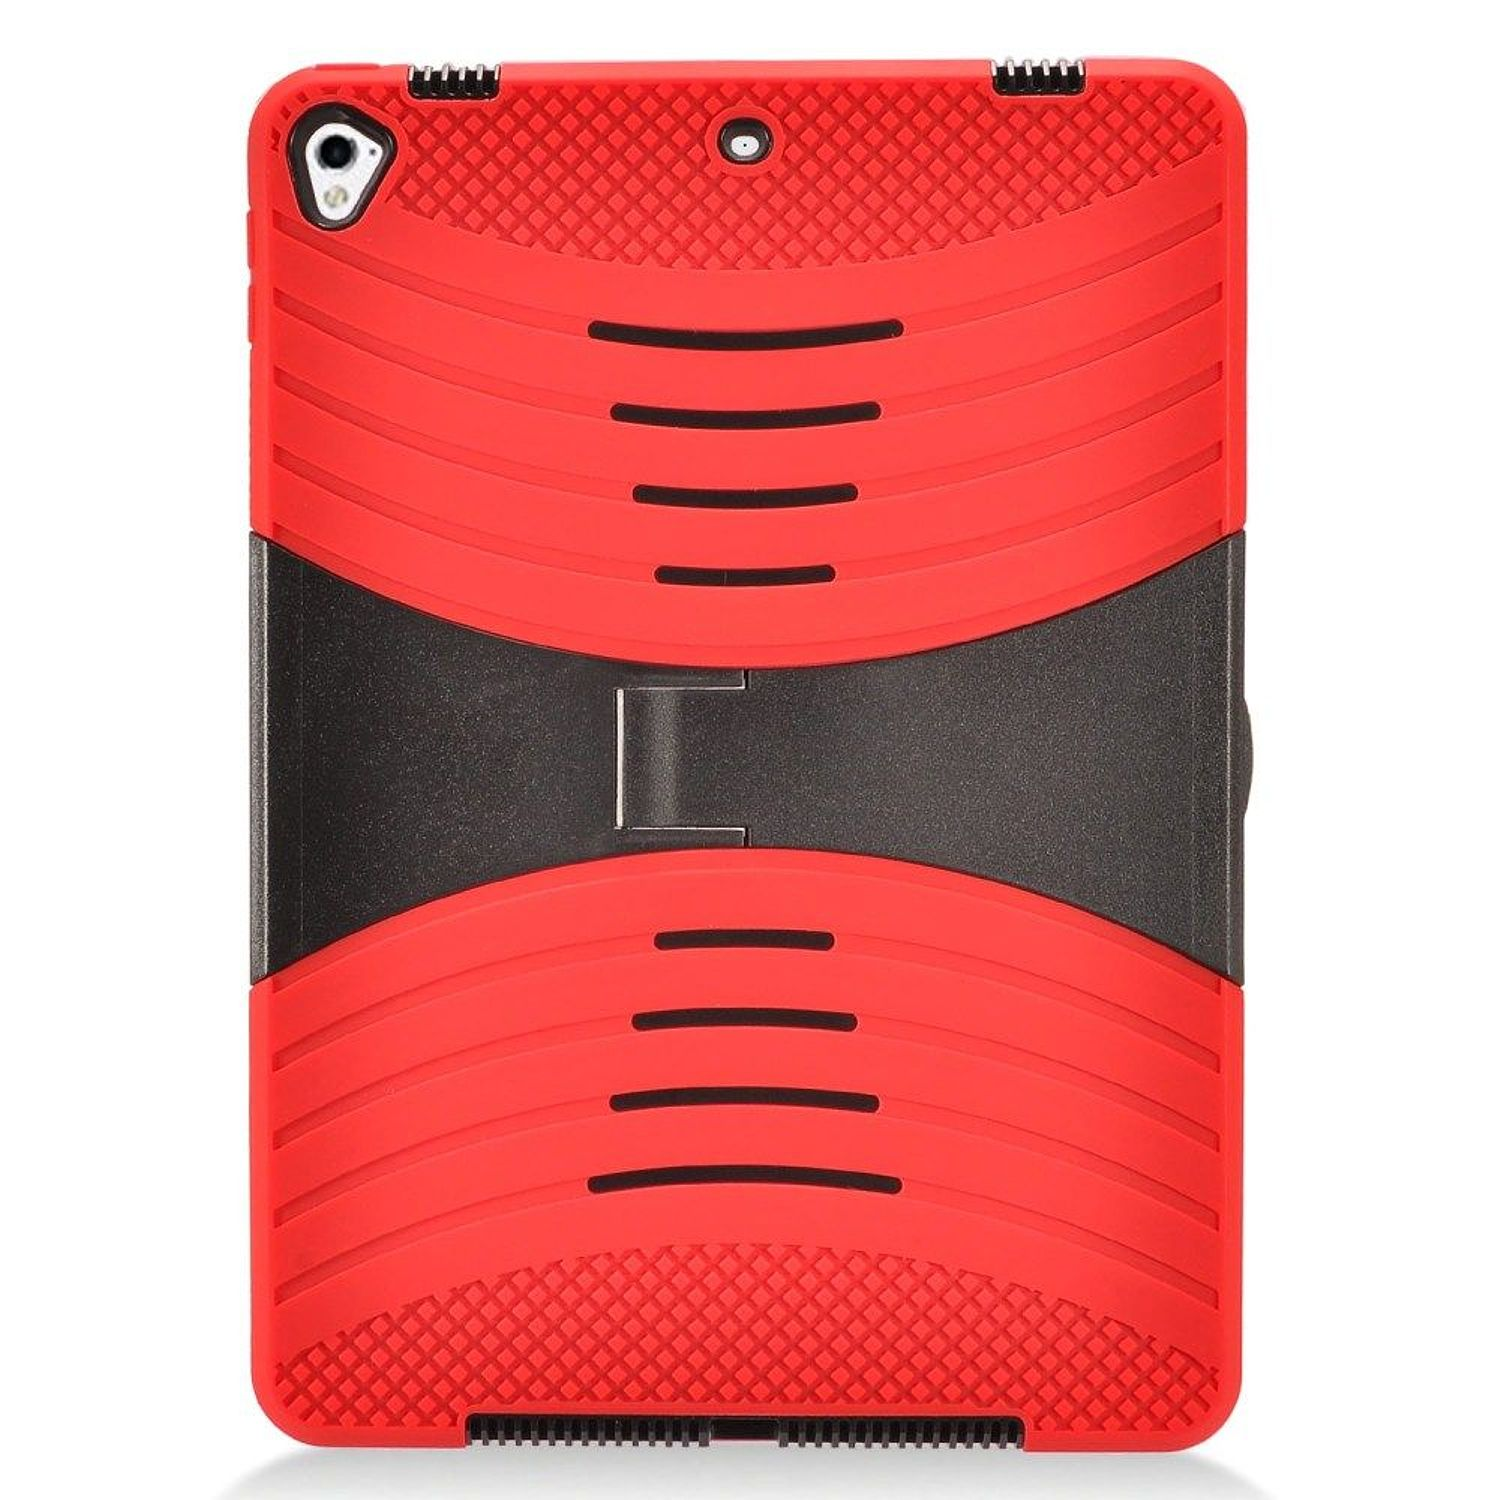 """iPad Case 9.7"""" 2017, by Insten Dual Layer [Shock Absorbing] Hybrid Stand Rubberized Silicone/Plastic Case Cover For iPad 9.7"""" (2017), Red/Black"""